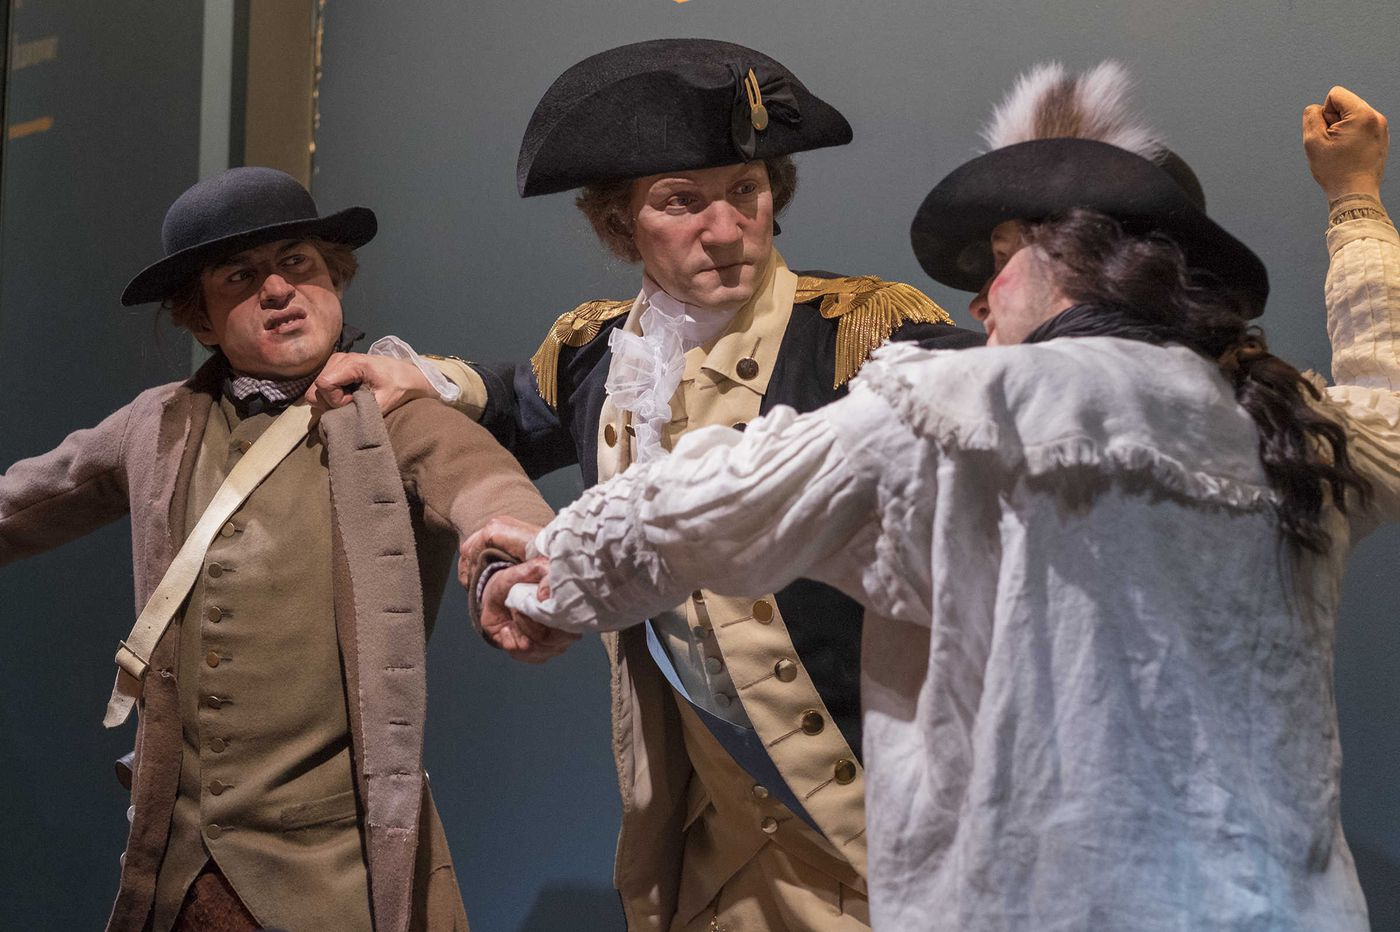 Museum of the American Revolution: Shockingly realistic statues bring the Revolution to life